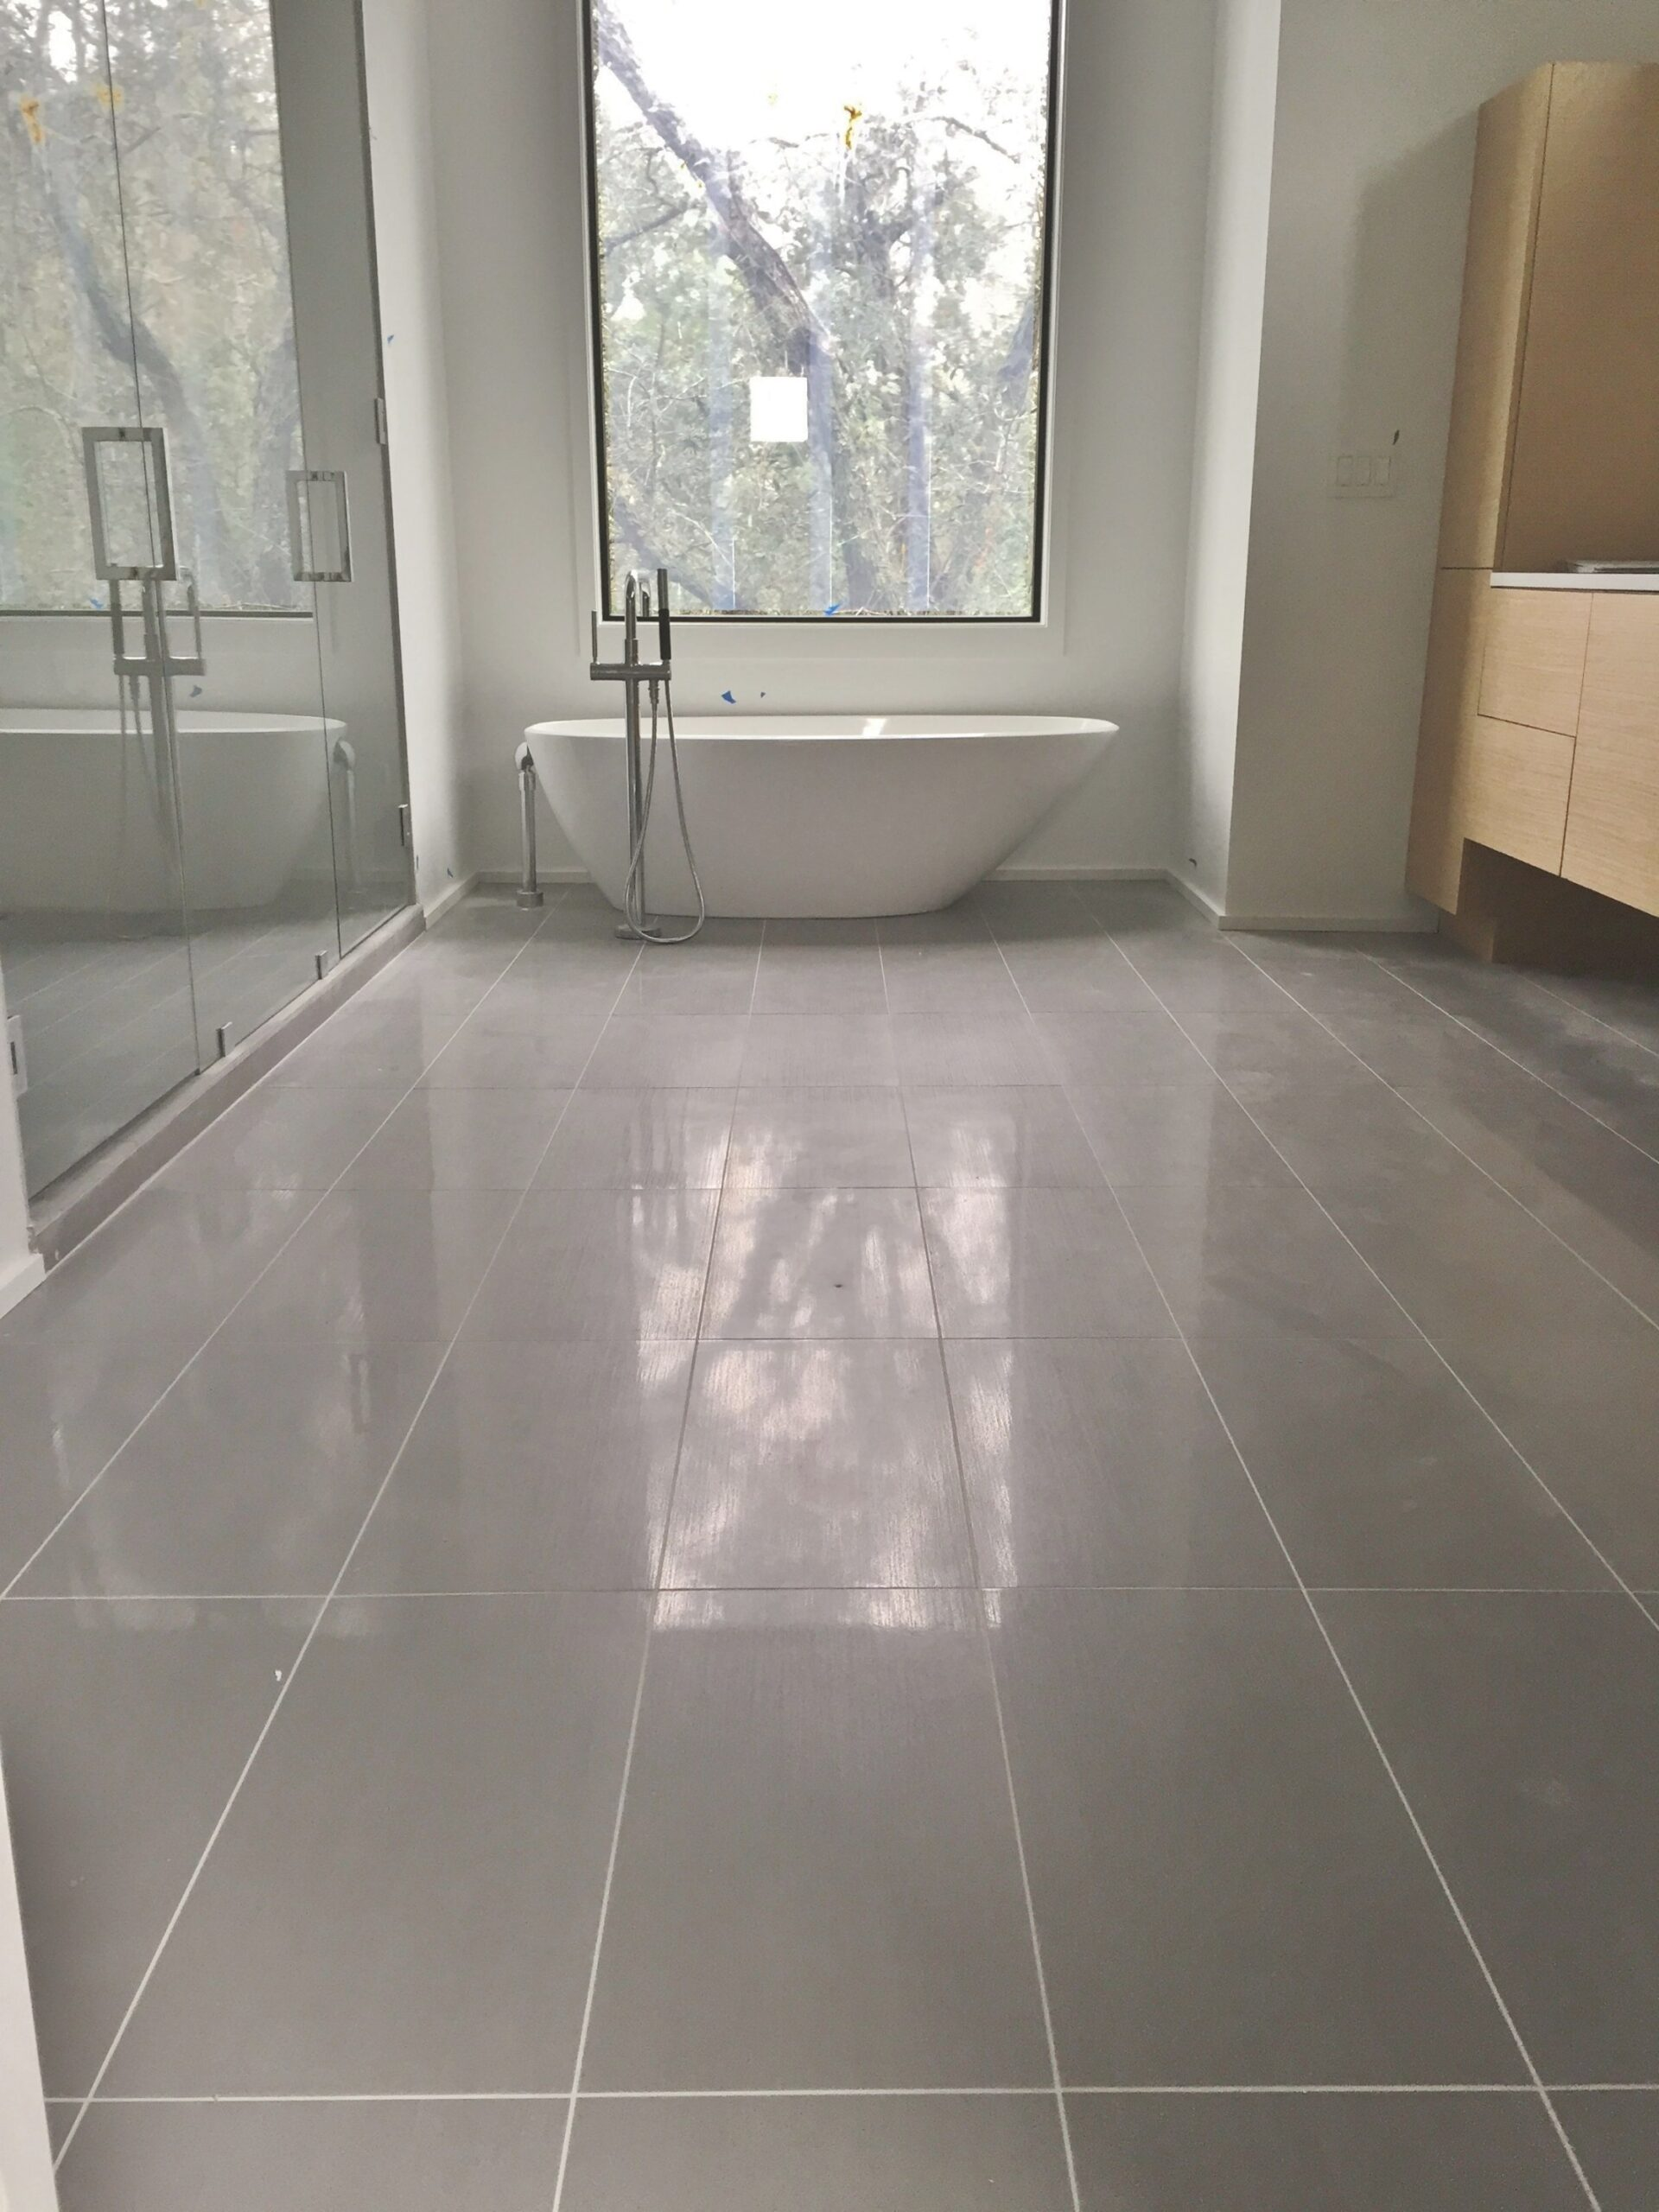 12X24 Porcelain Tile On Master Bathroom Floor. | Patterned in 12X24 Tile In Small Bathroom